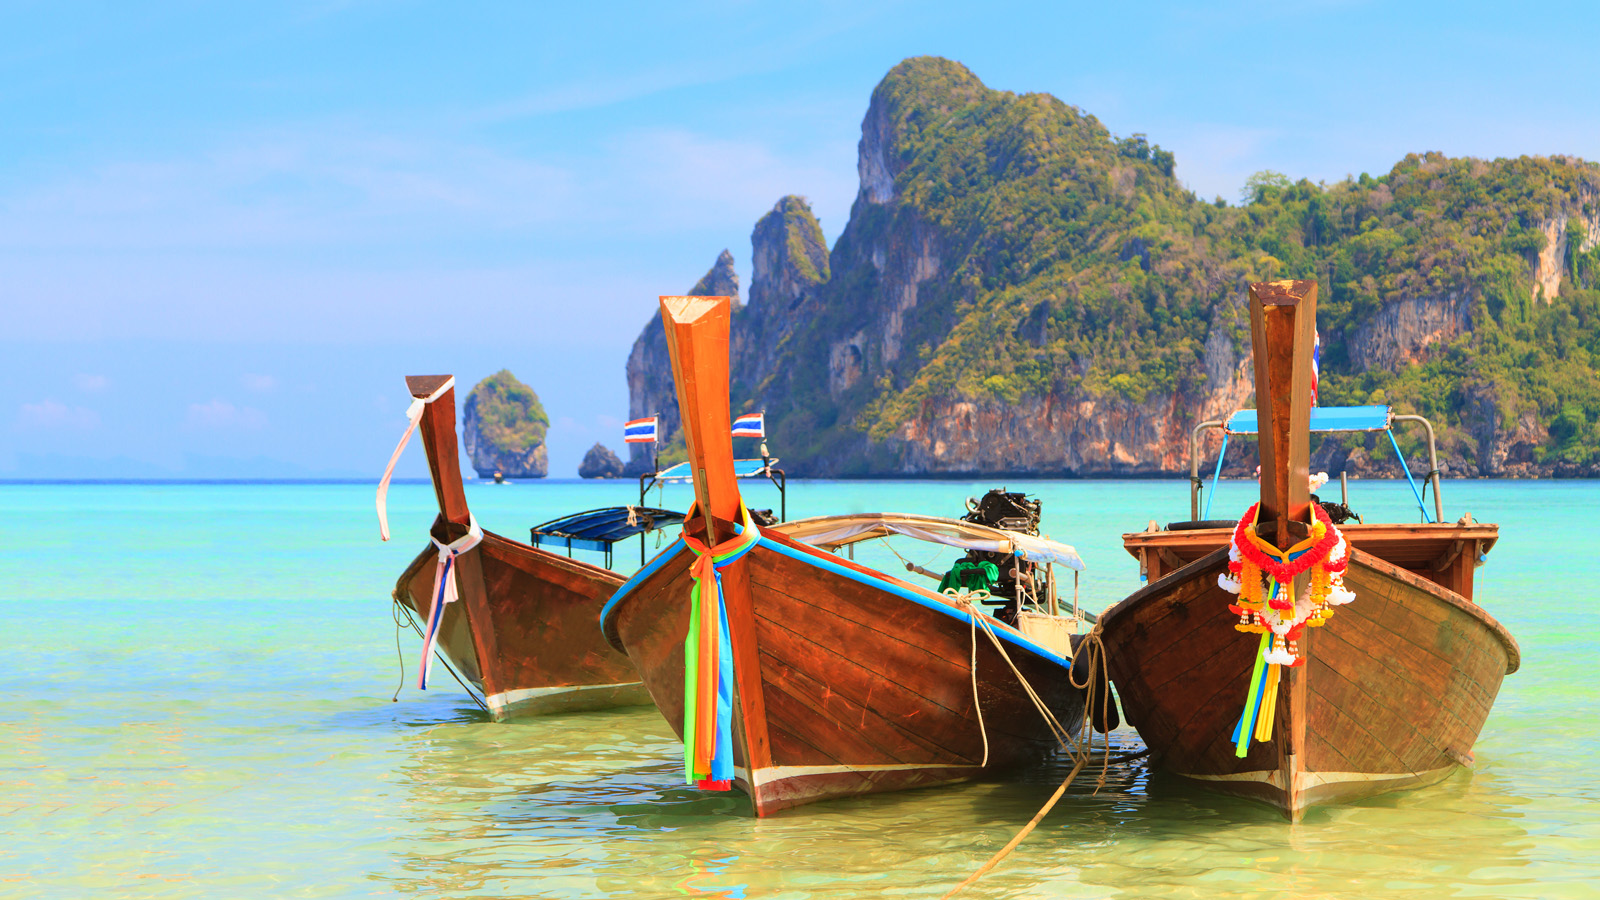 Romantic Southeast Asia Honeymoon Getaway